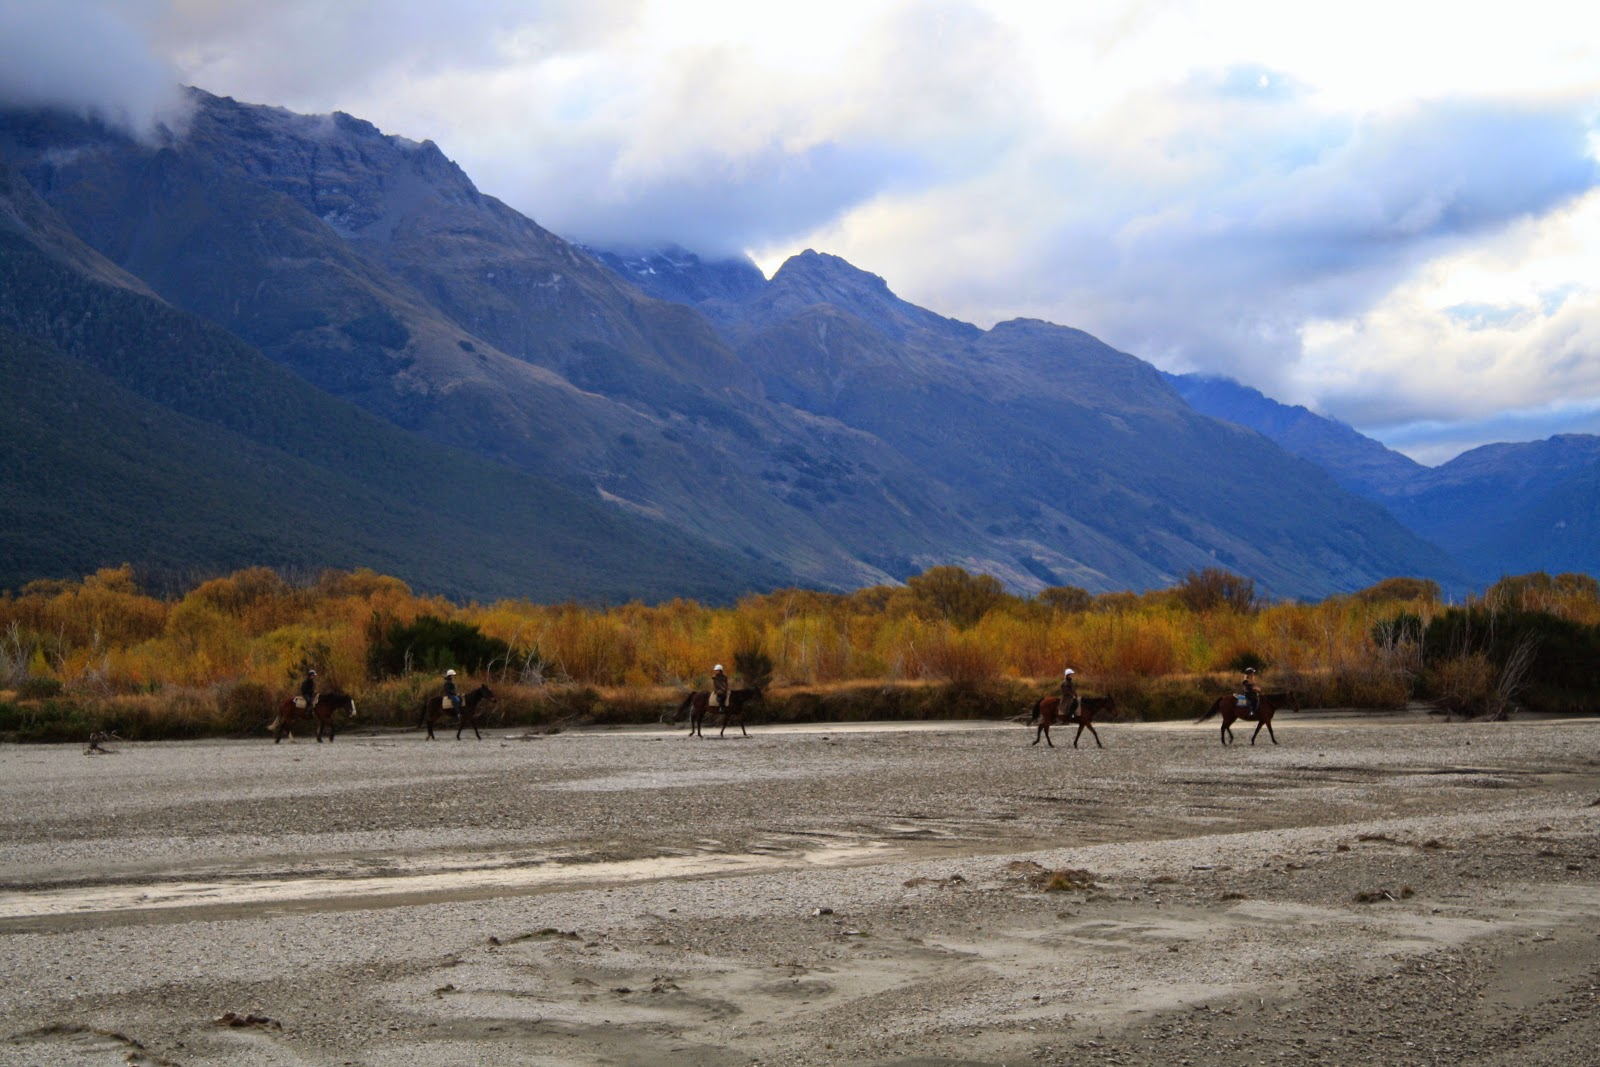 Horse riders in front of some mountains, near Glenorchy.